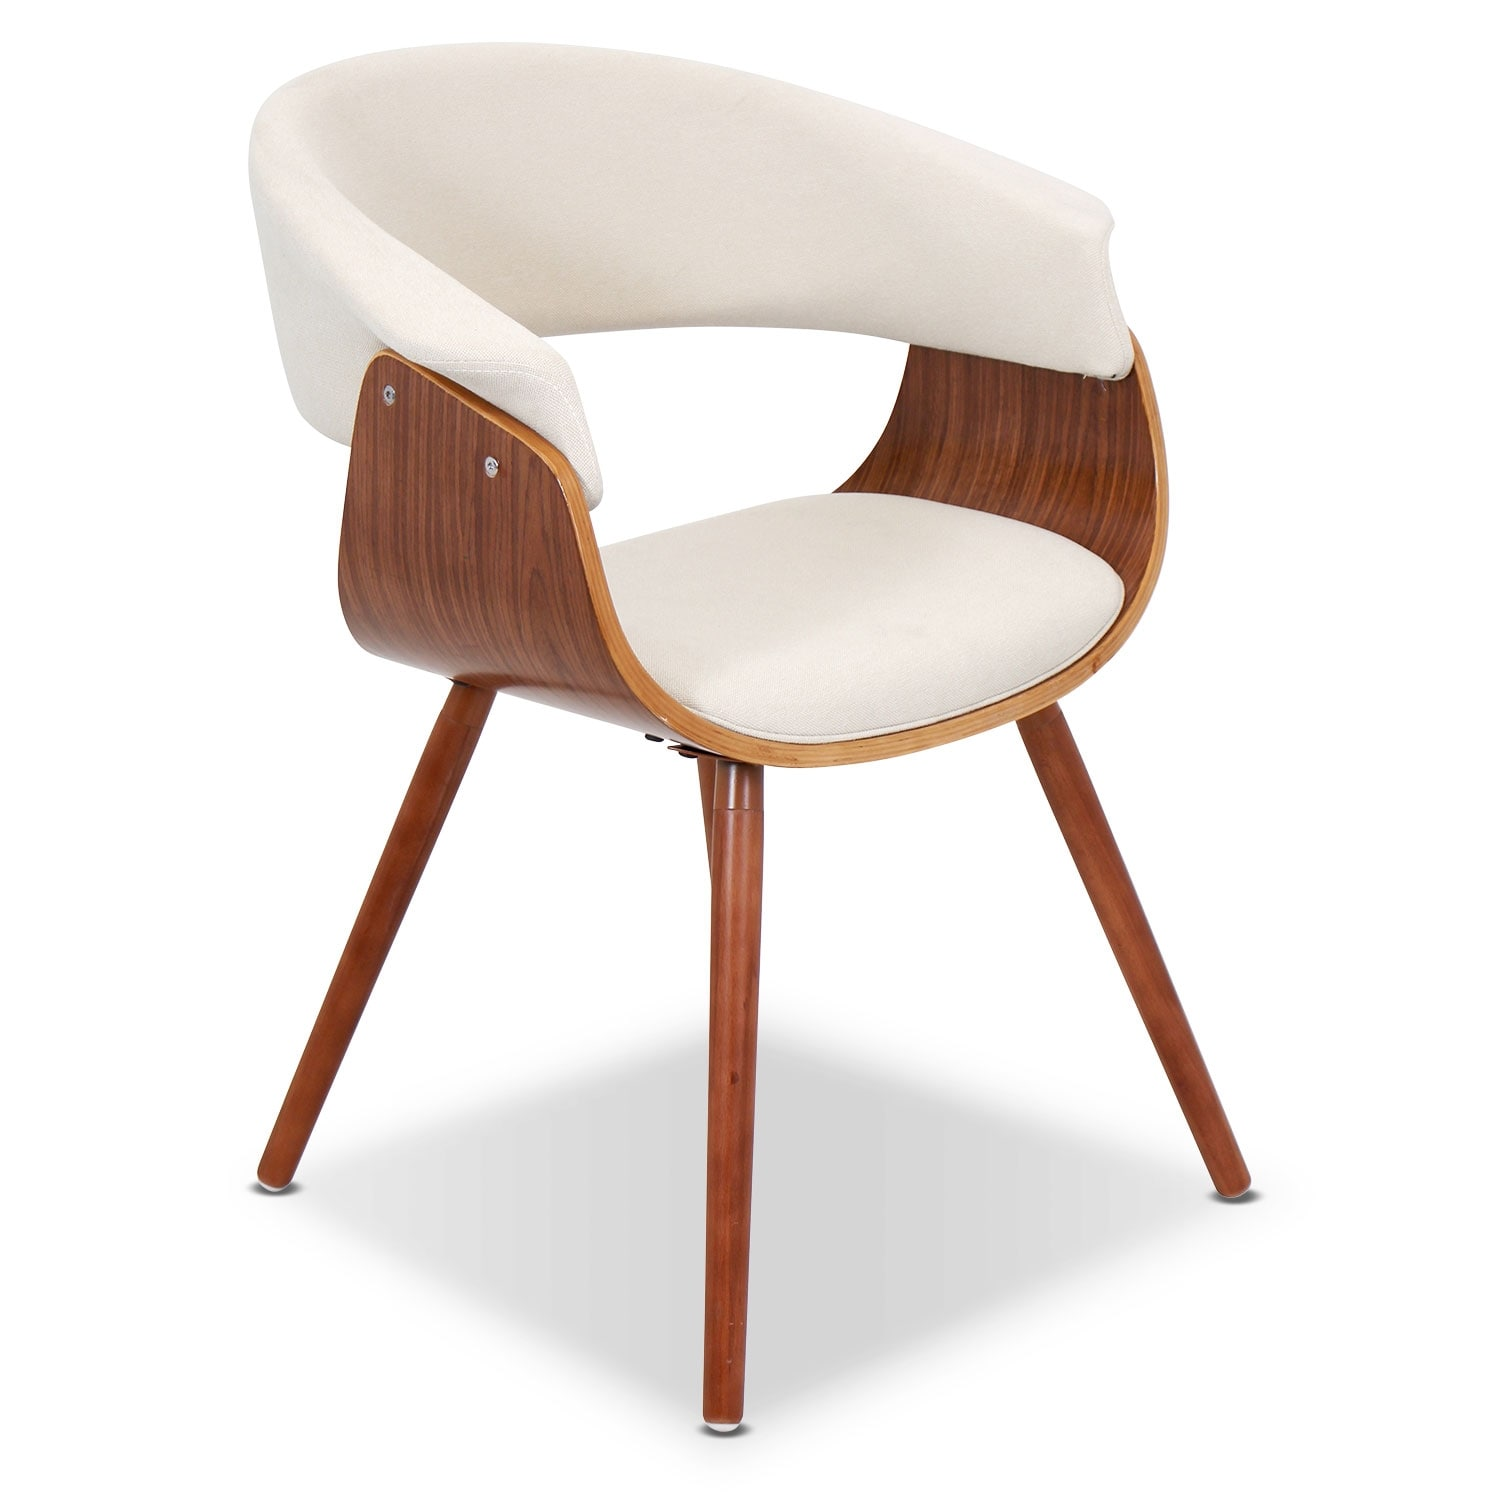 Living Room Furniture - Beacon Accent Chair - Cream